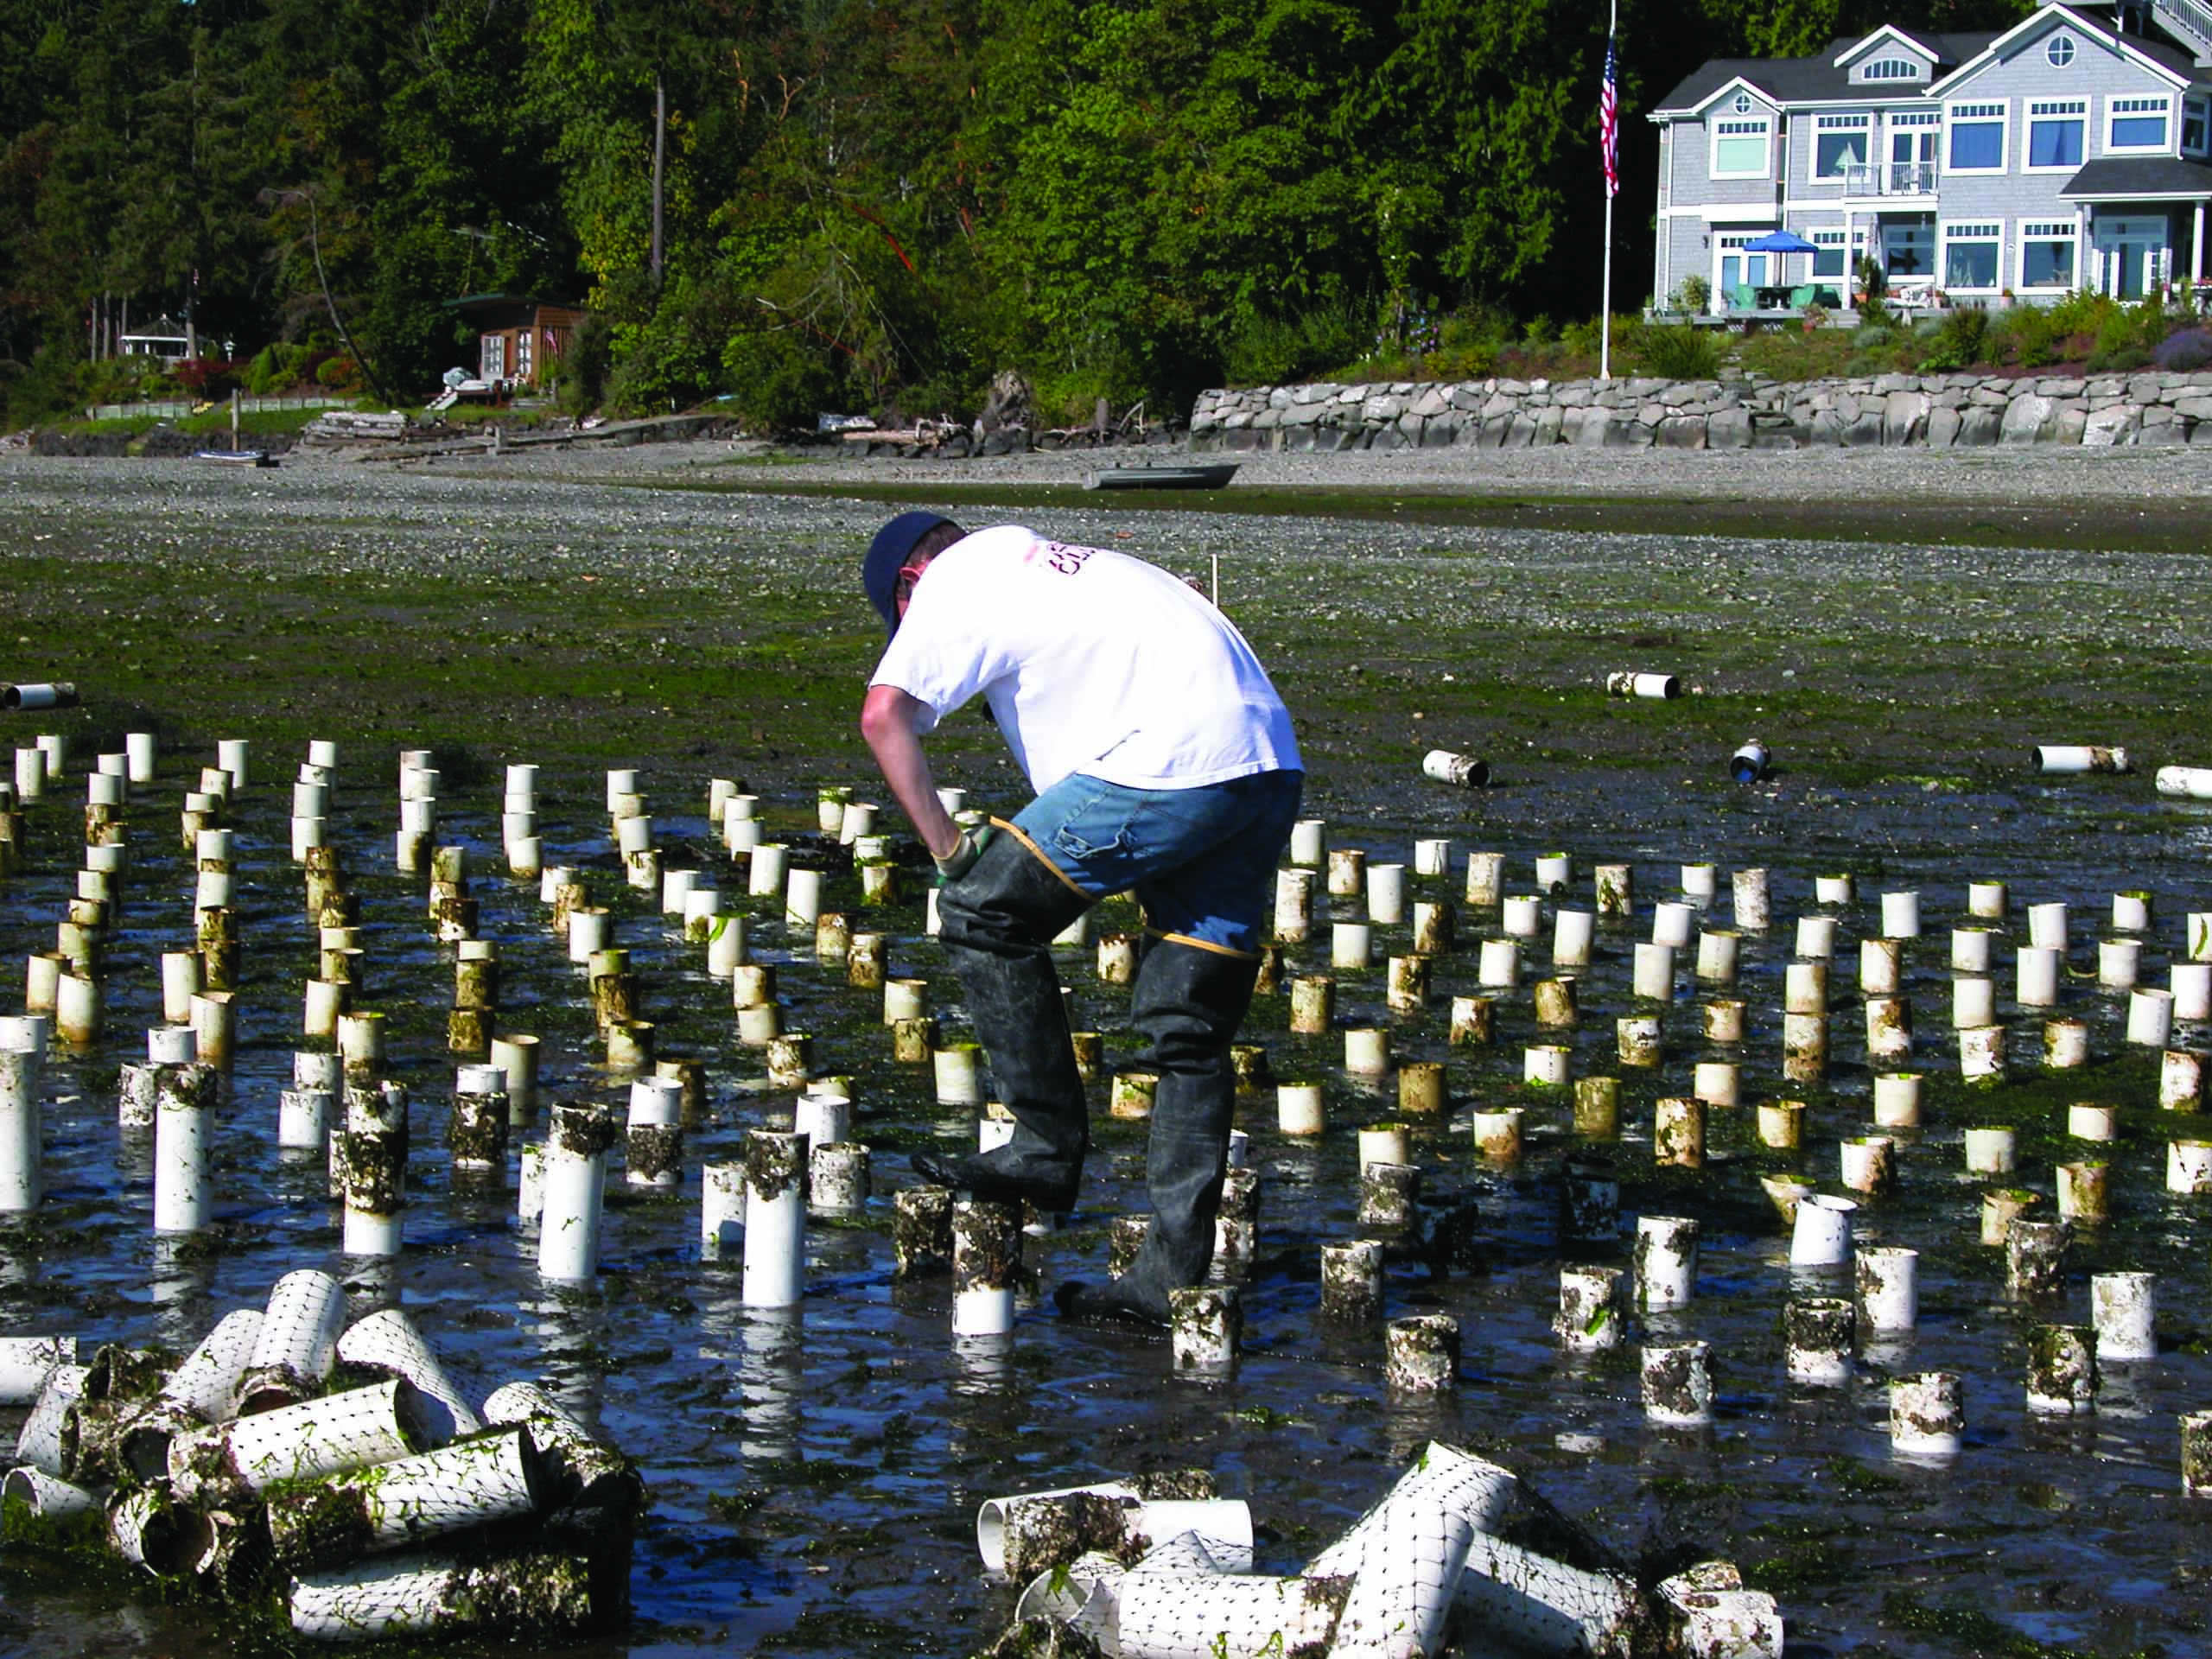 Commercial-scale, intertidal culture of Pacific Geoducks